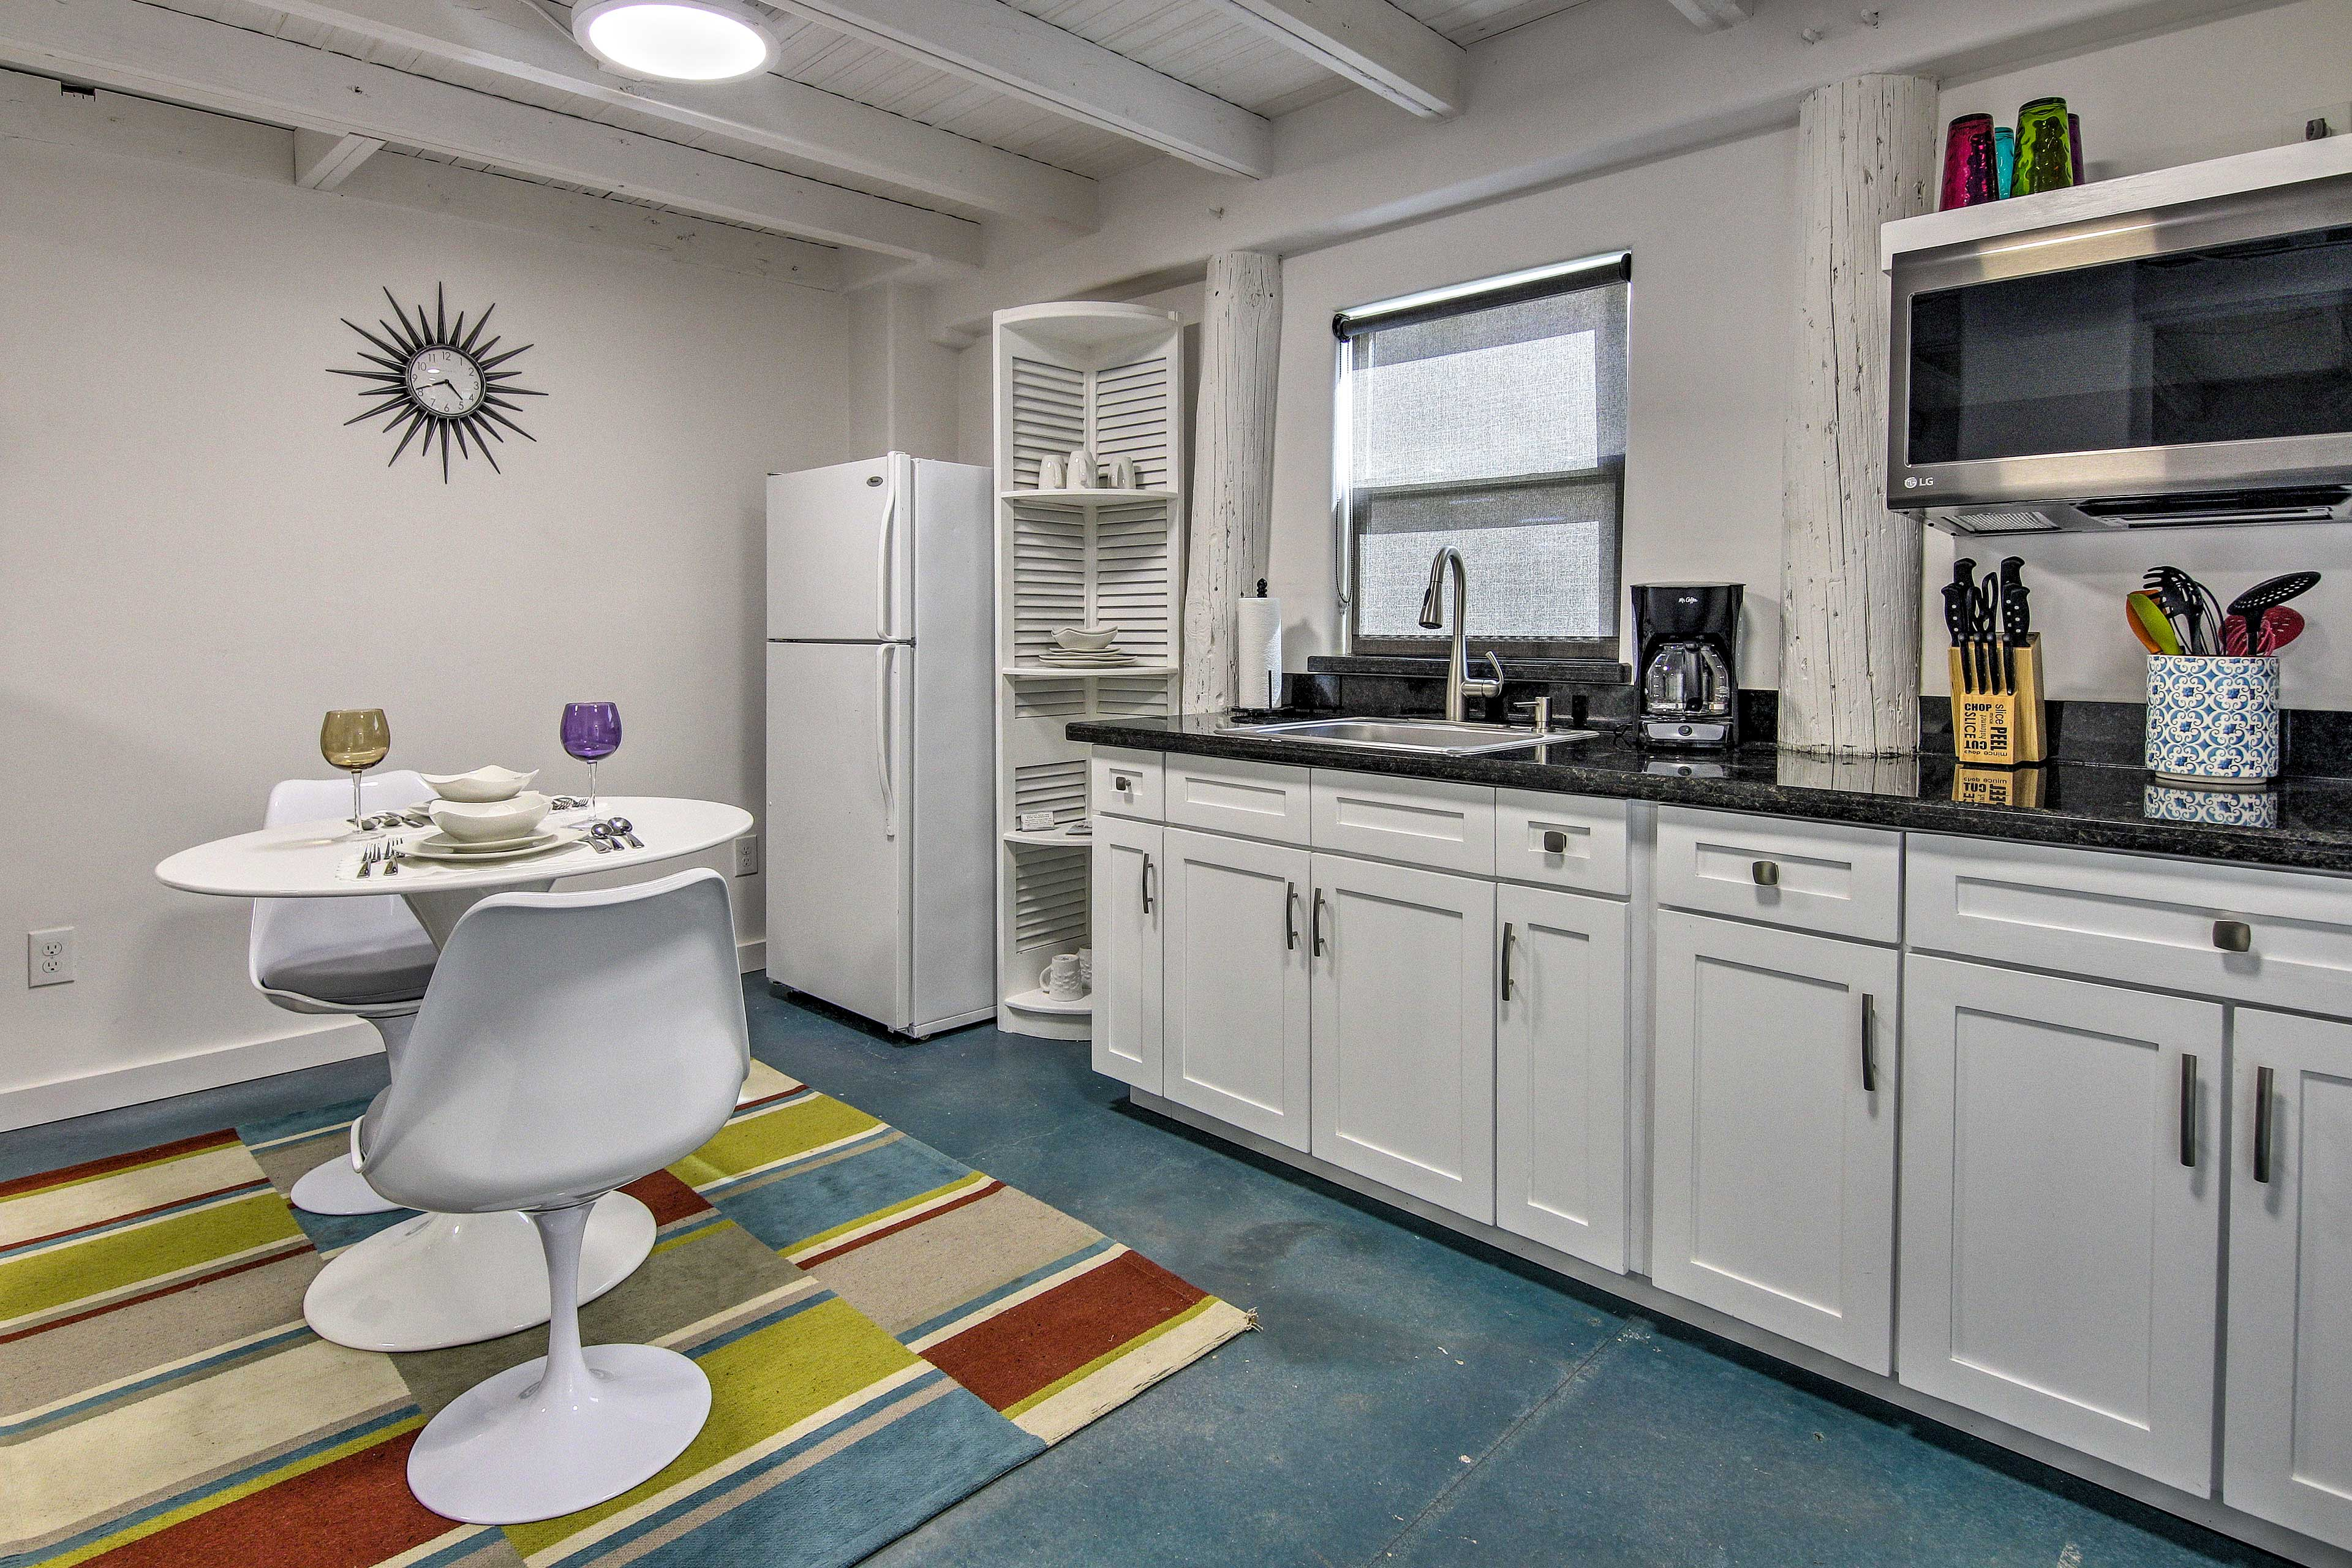 The kitchen includes a toaster over, induction cooktop, microwave, and more.